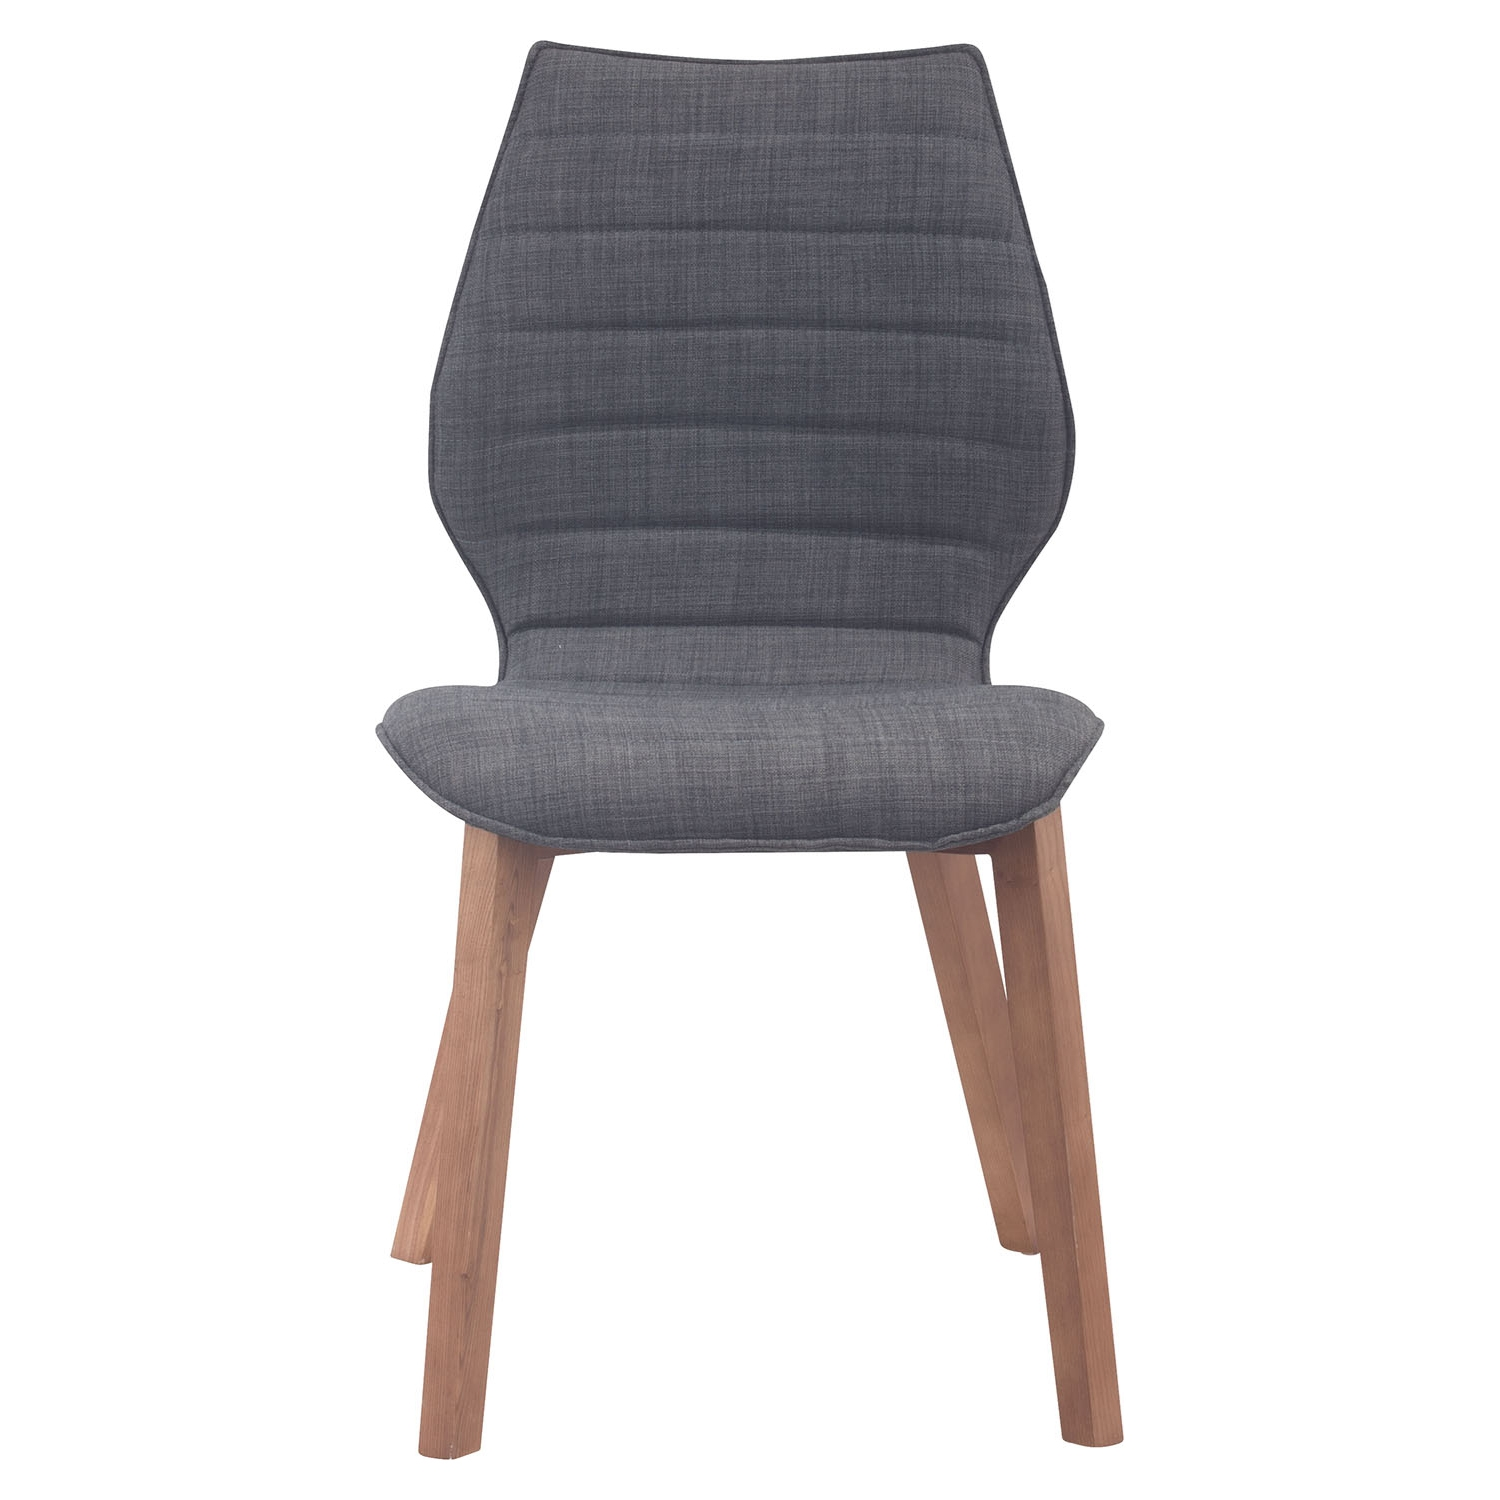 Aalborg Dining Chair - Graphite